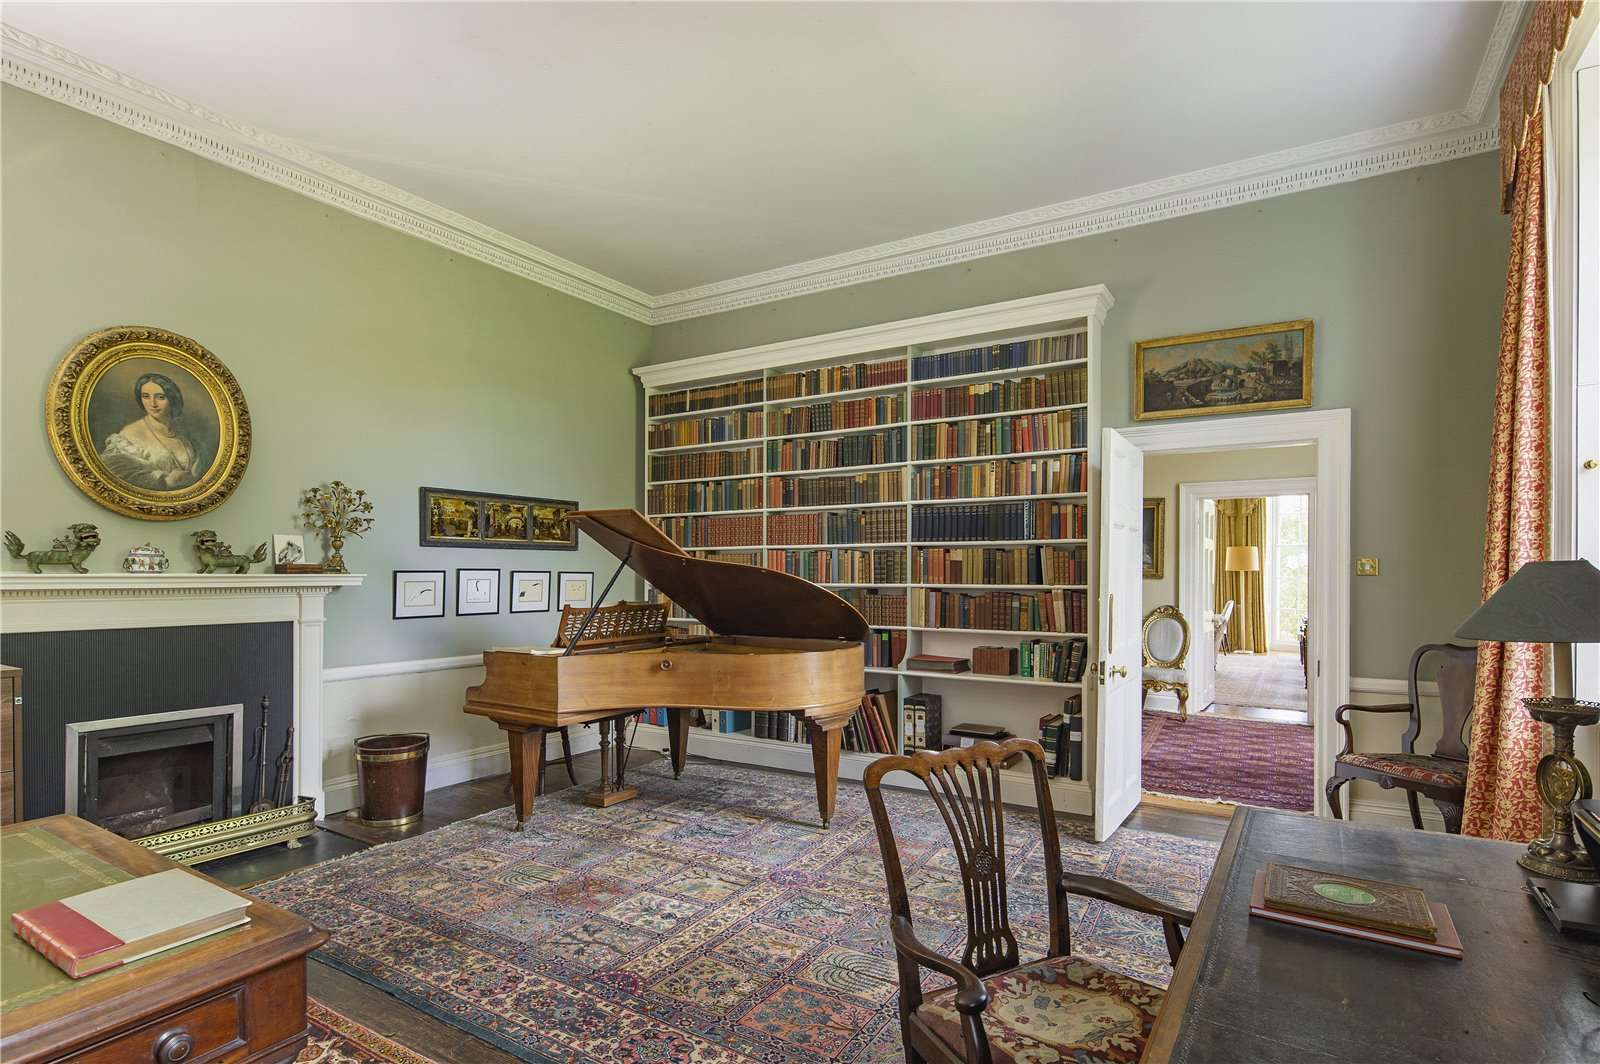 Beauforest House, Wallingford - Image Gallery 08 - Music Room